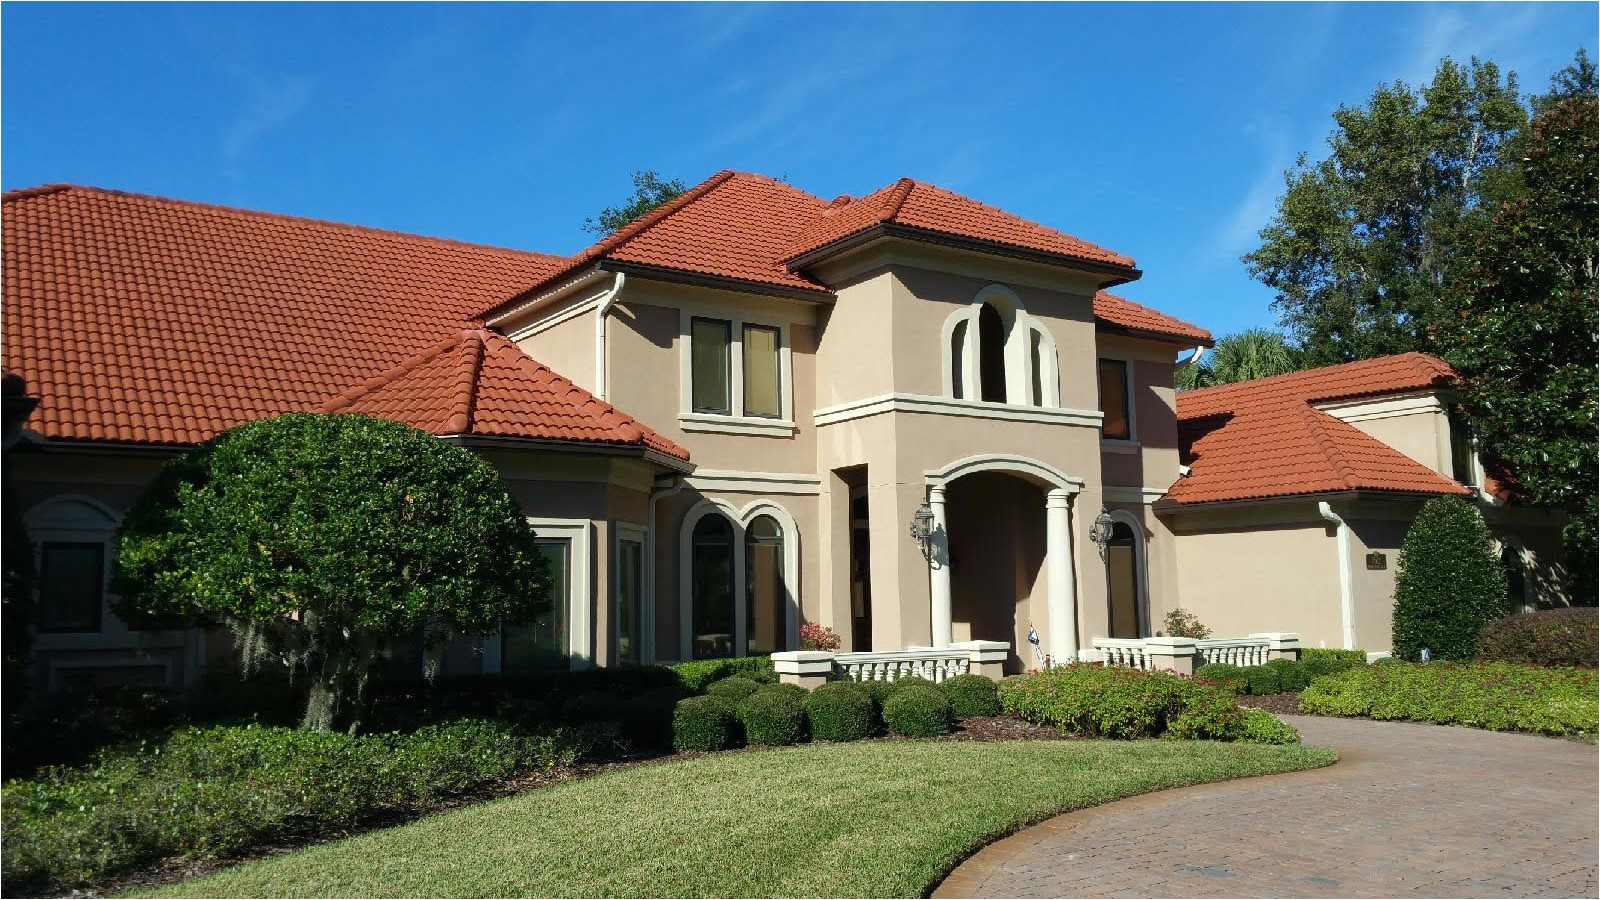 7 inch seamless gutters installed on this elegant stucco home